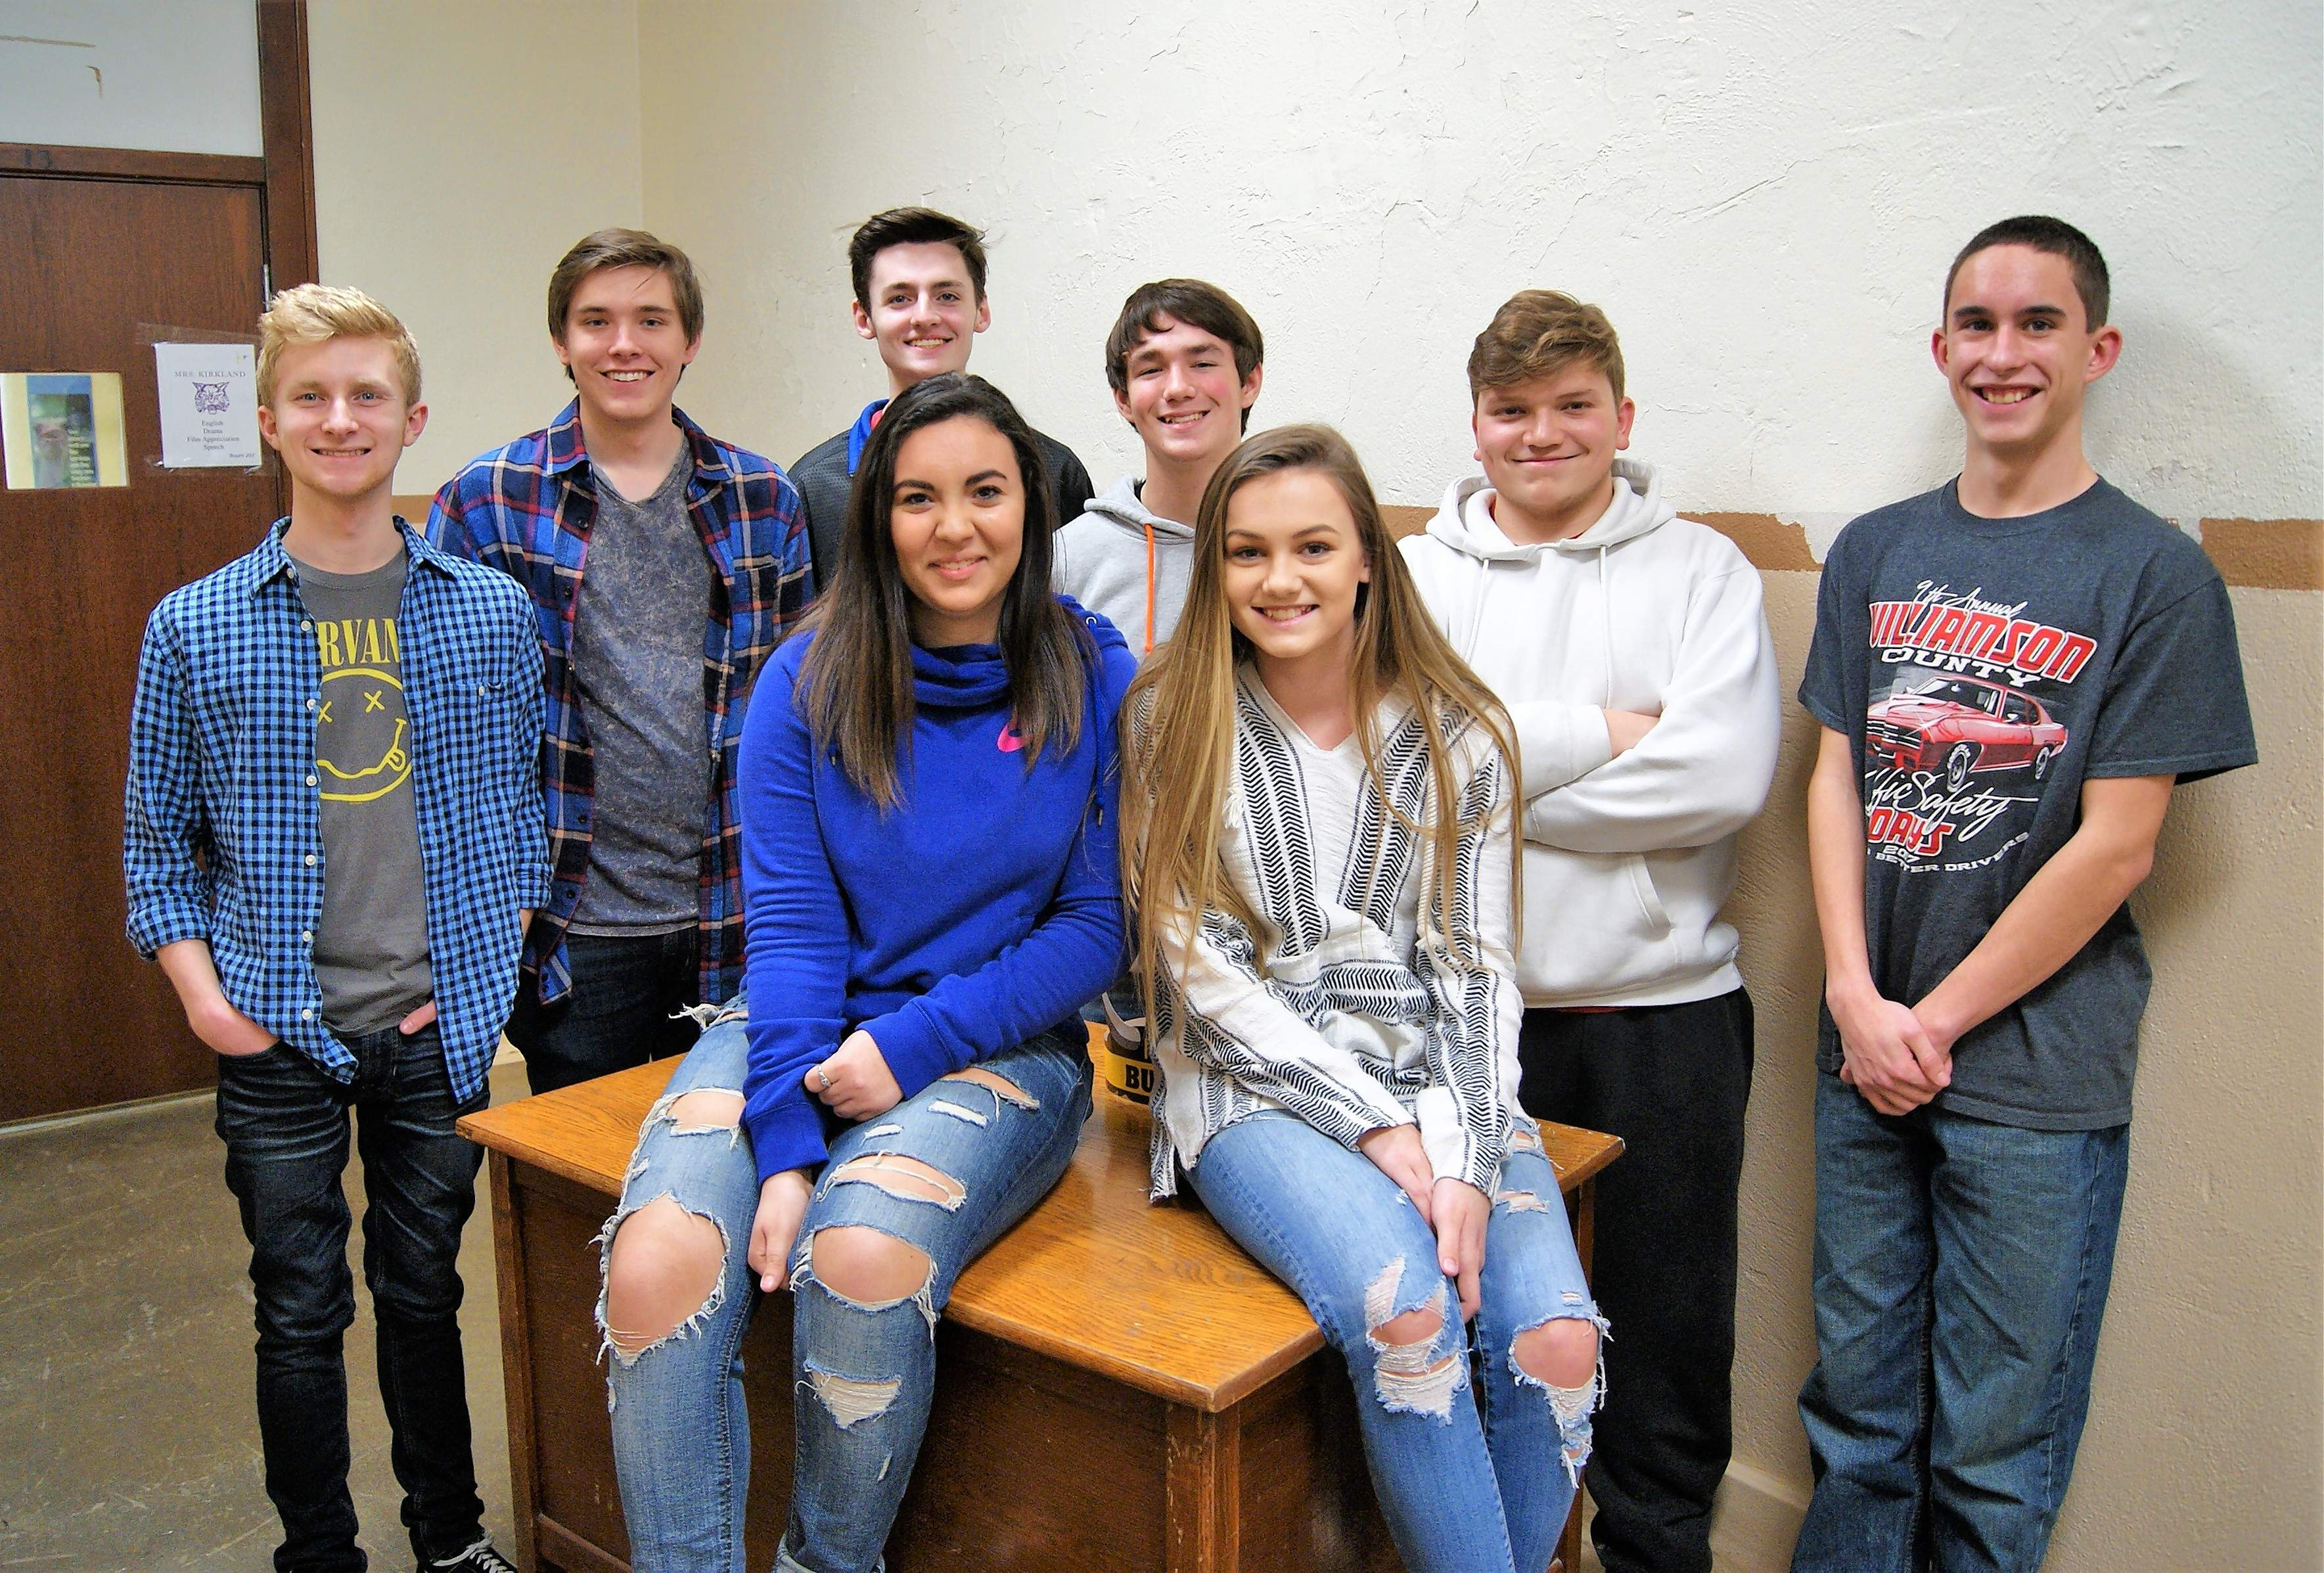 Members of the Math and Science Club are: Abbey Zertuche and Abby Whiting (sitting) and, from left, Kale Rister, Alex Peebels, Billy Lewis, Brandon Hambleton, Jeremy Cucinotta, and Kyle Bristow. Lauren Hancock was unavailable for the photo.